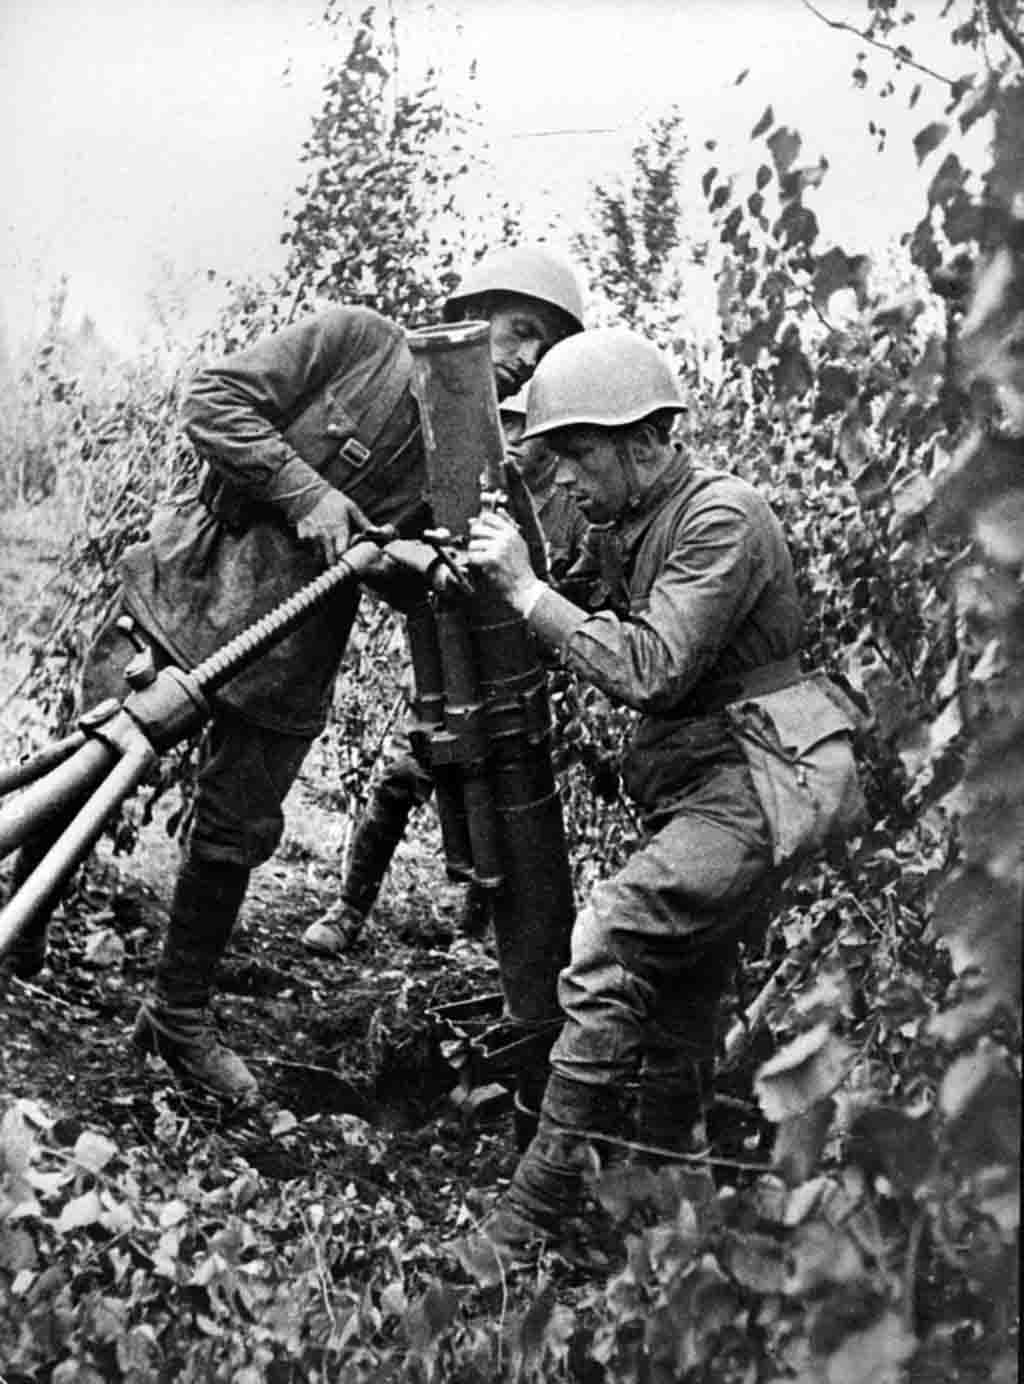 120-mm mortar